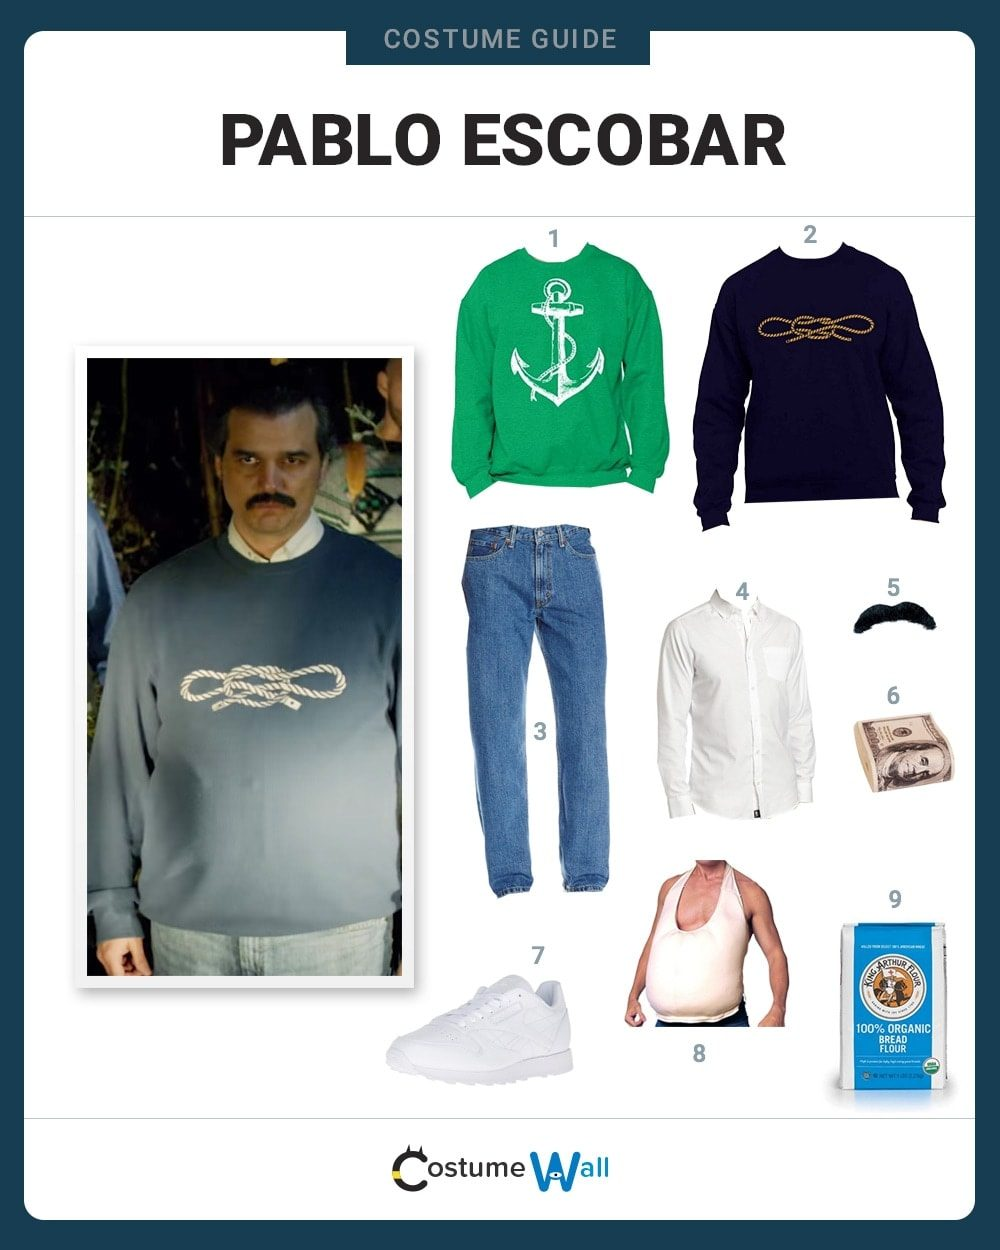 Pablo Escobar Costume Guide